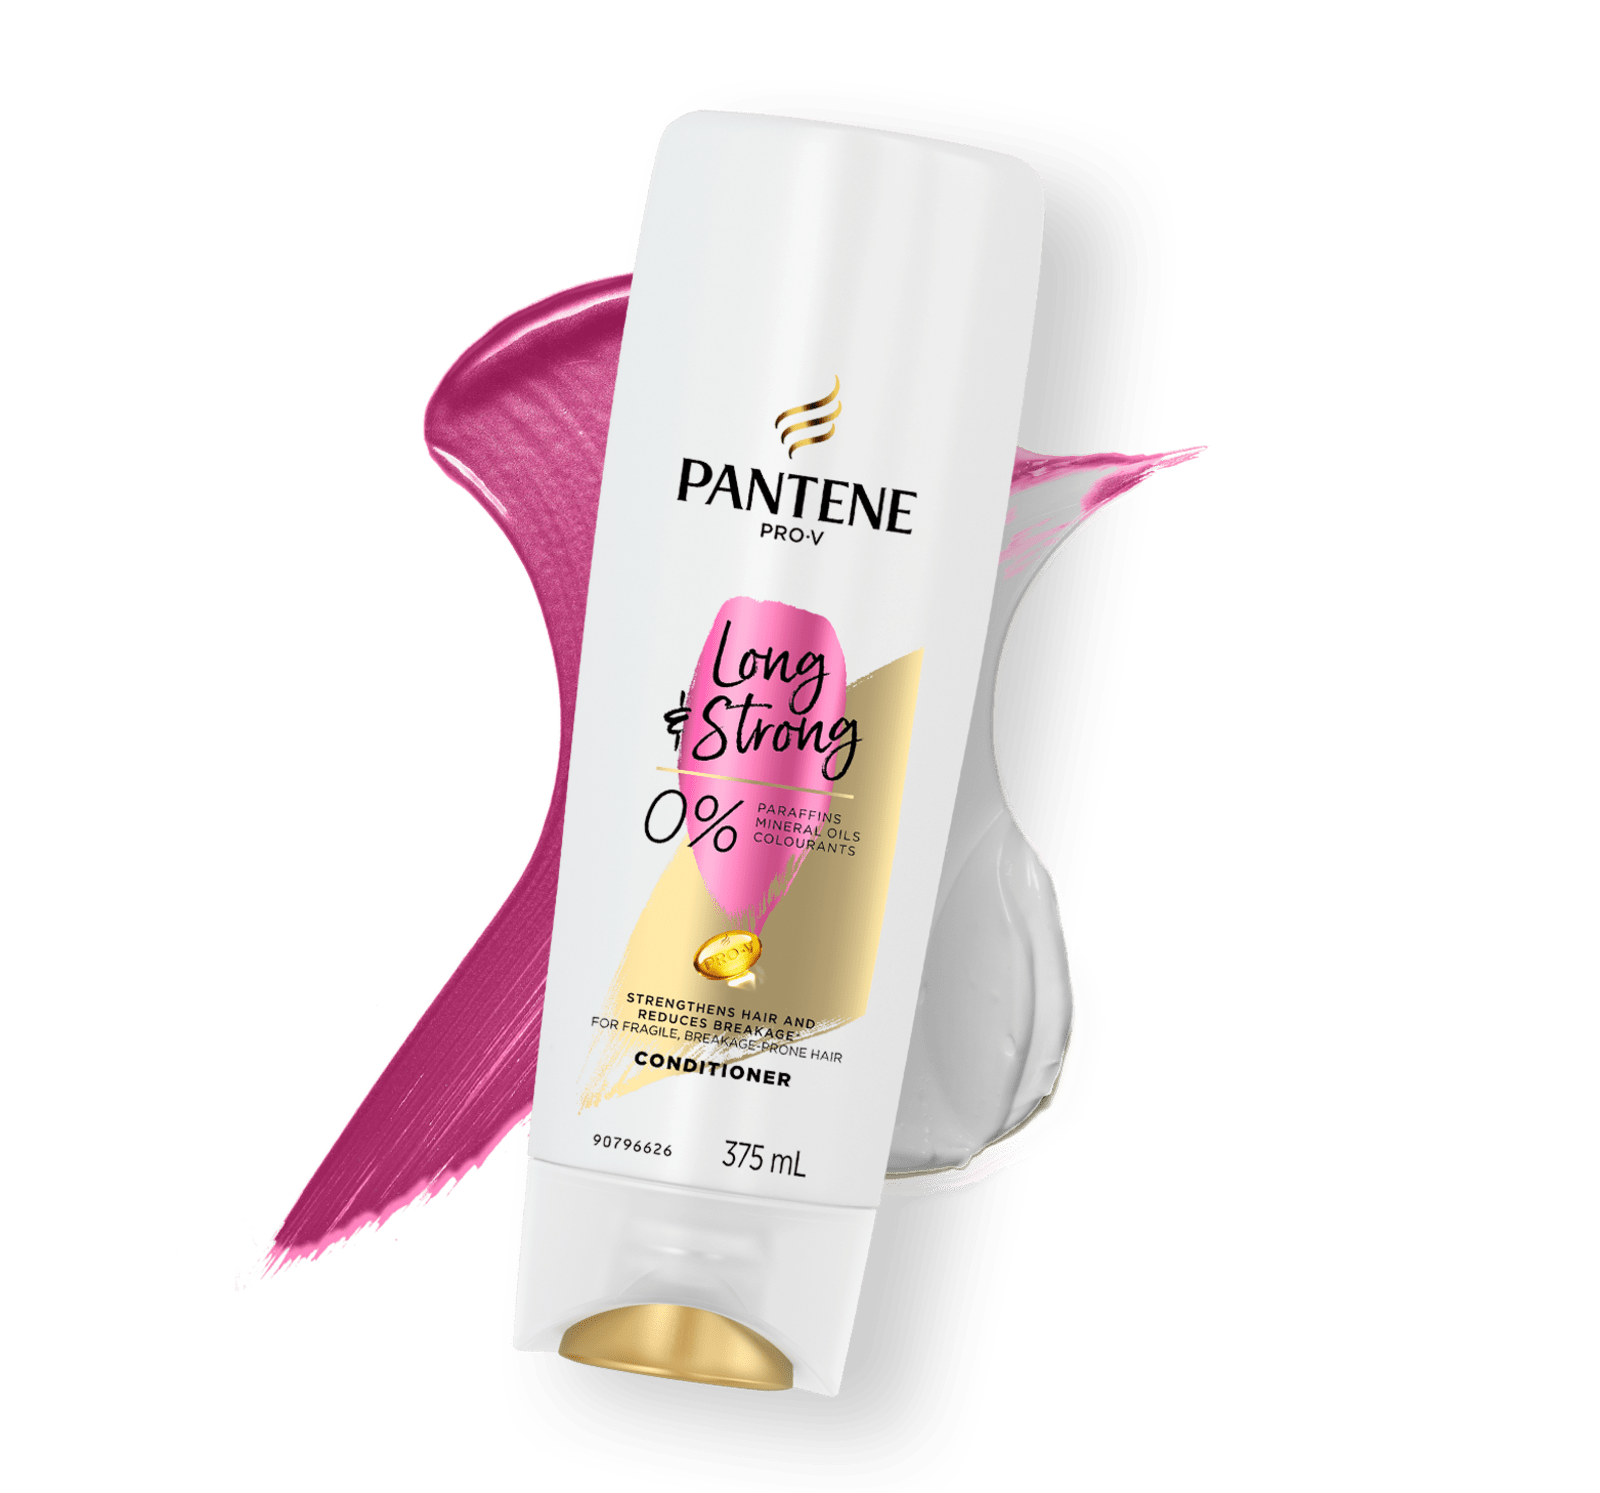 LONG & STRONG CONDITIONER